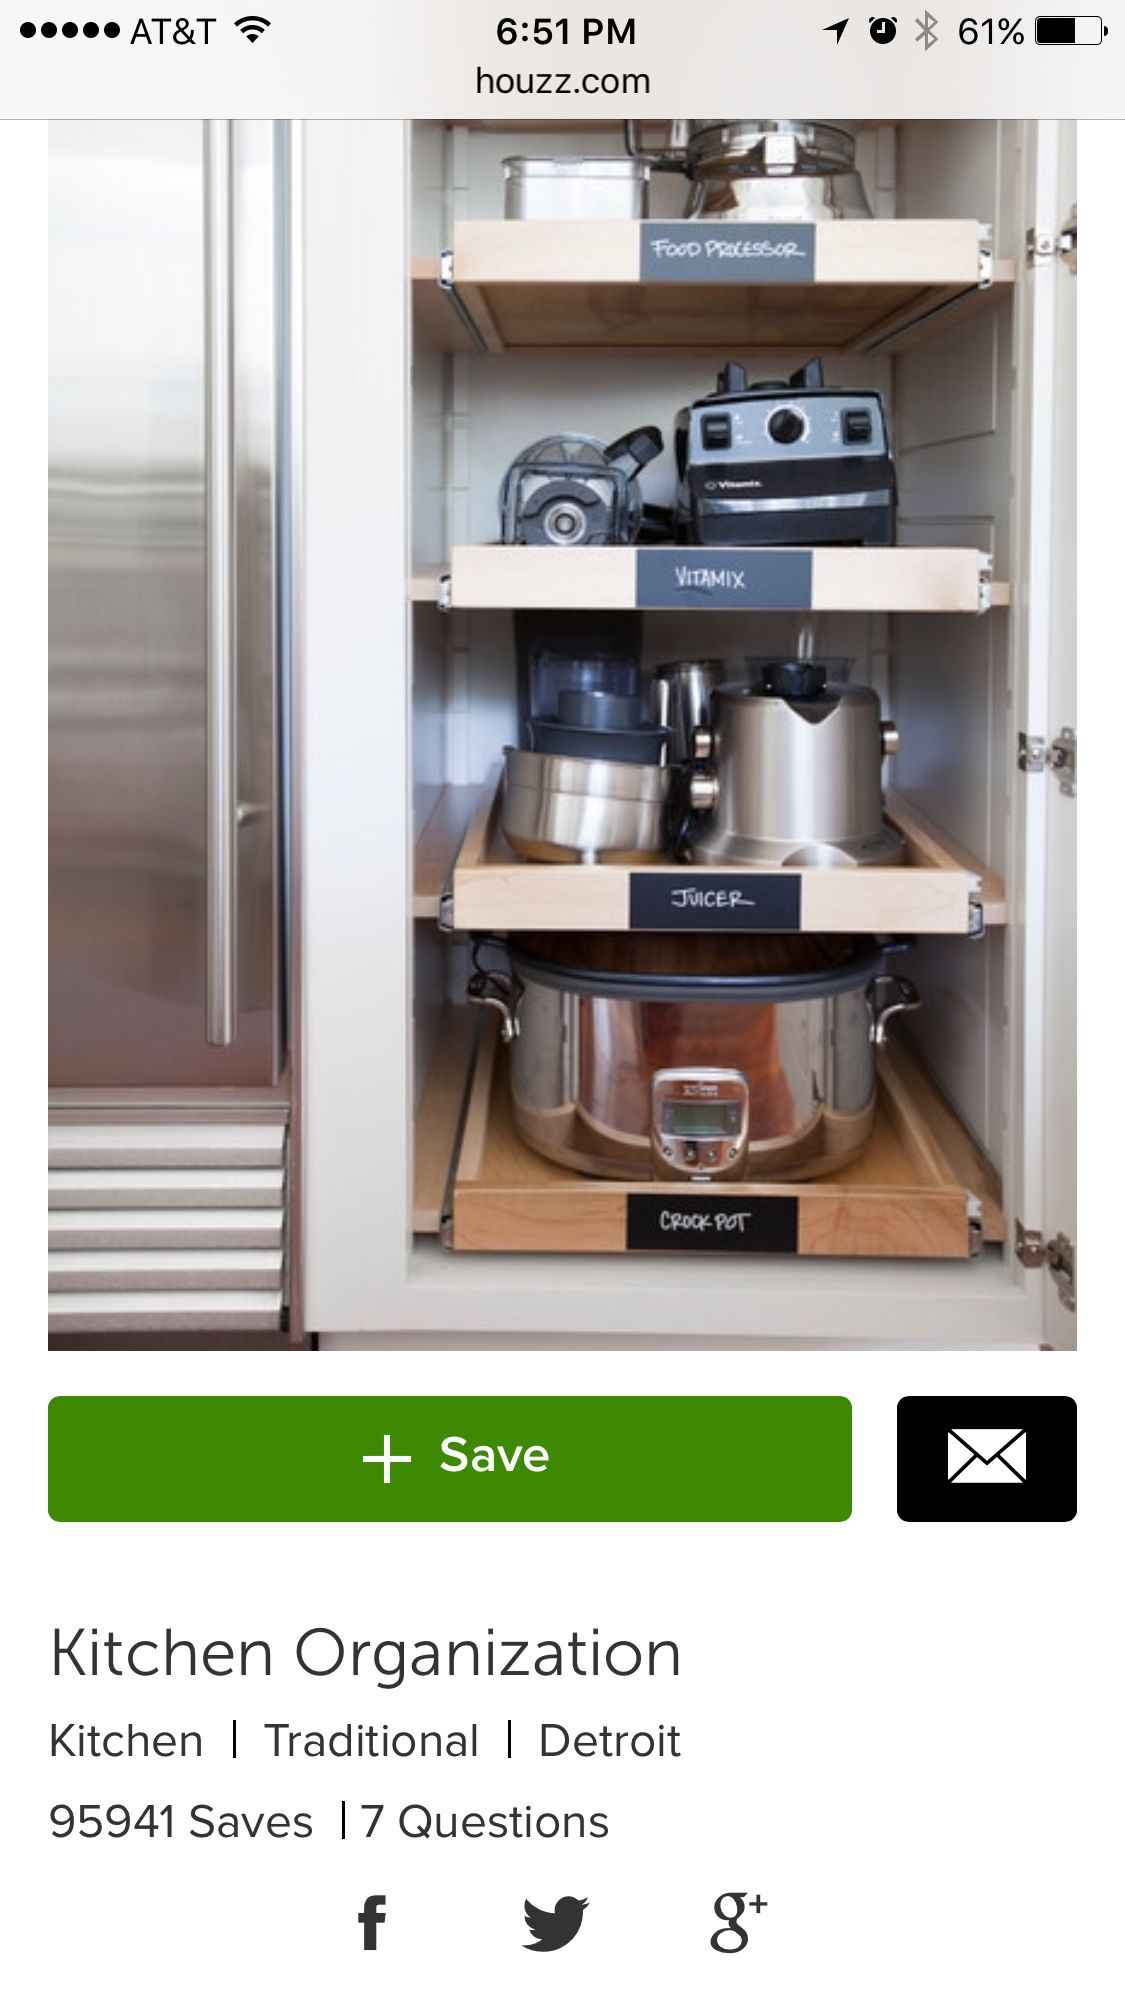 226c66ca56d8a5174ad8f5128b75162b Pantry Ideas Kitchen Organization Pull Out Drawers on closet pull out drawers, tool storage pull out drawers, pantry organization shelves,